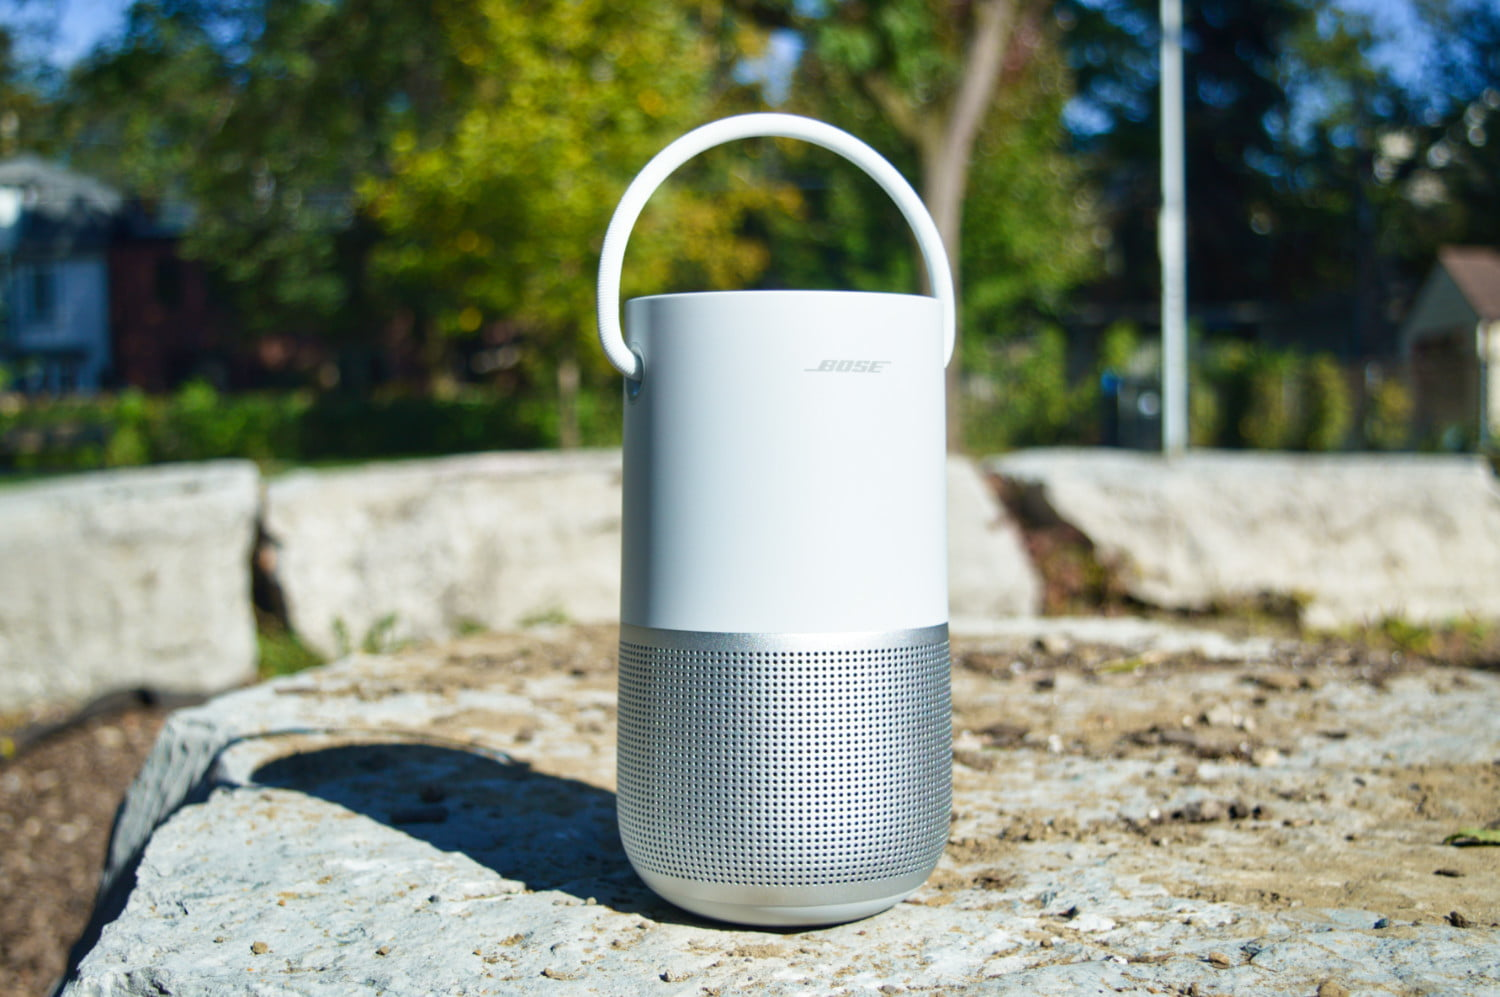 Bose Portable Home Speaker review: Great sound, anywhere